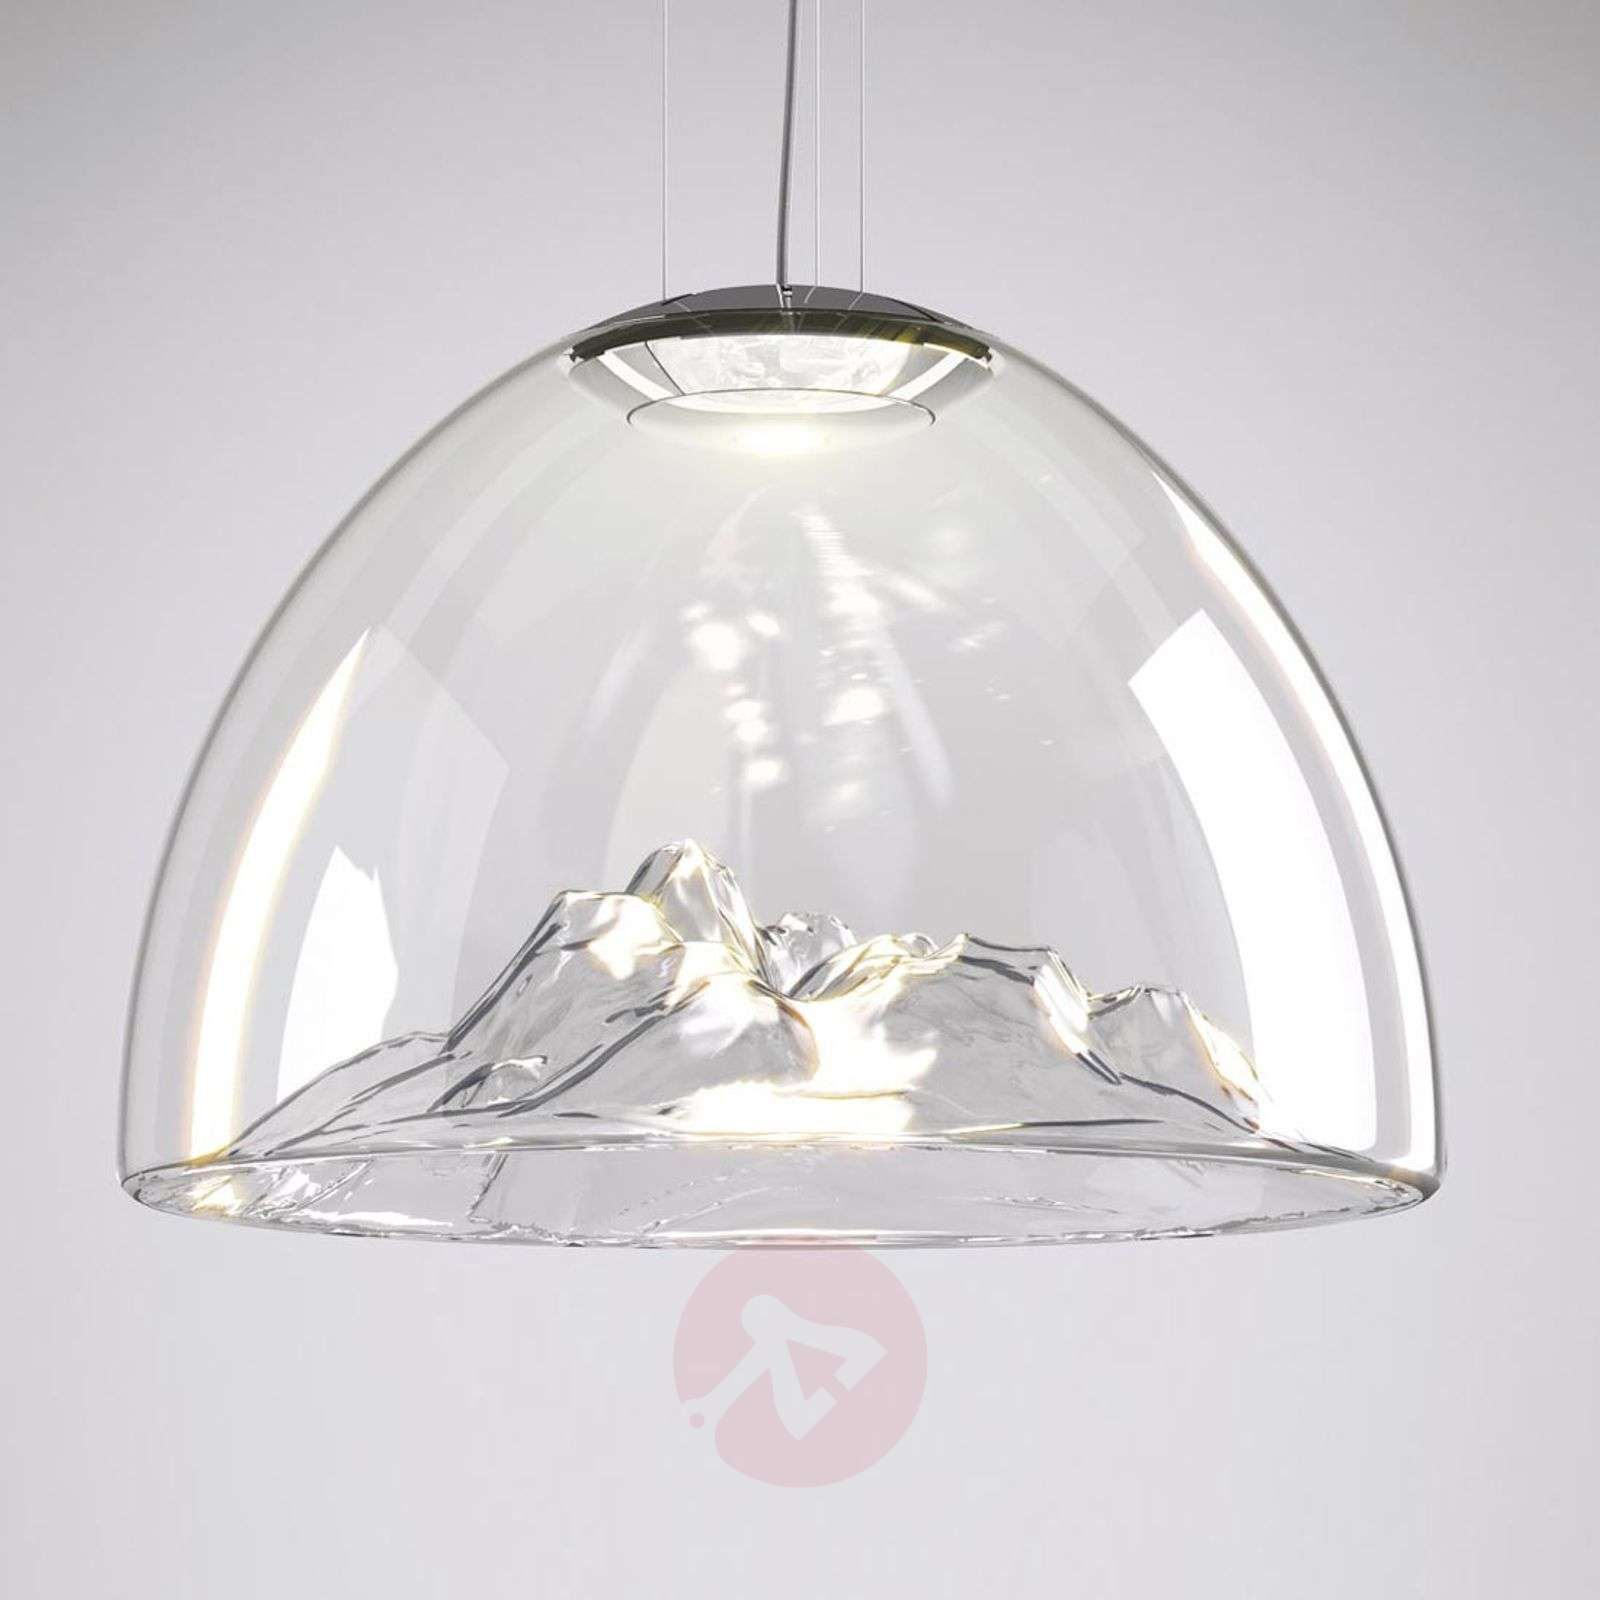 exquisite lighting. Exquisite LED Designer Hanging Lamp Mountain View-1088071-02 Lighting I